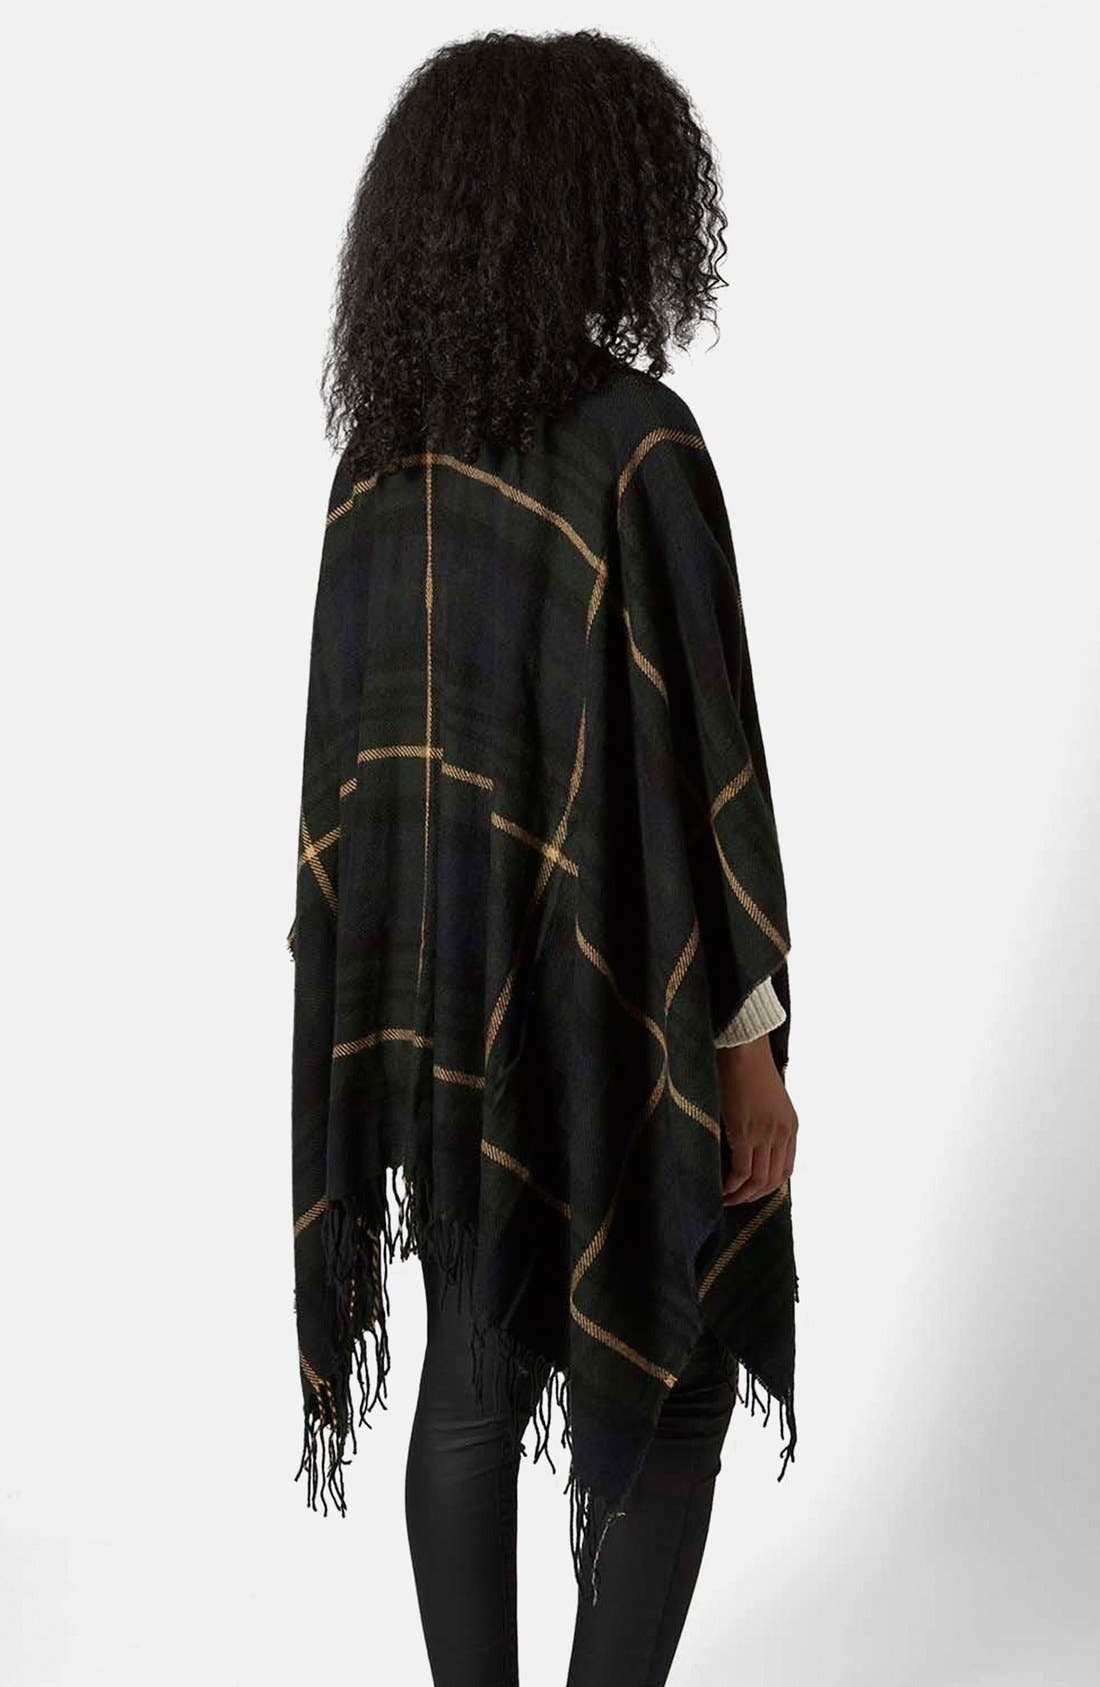 TOPSHOP,                             Checked Cape,                             Alternate thumbnail 2, color,                             400